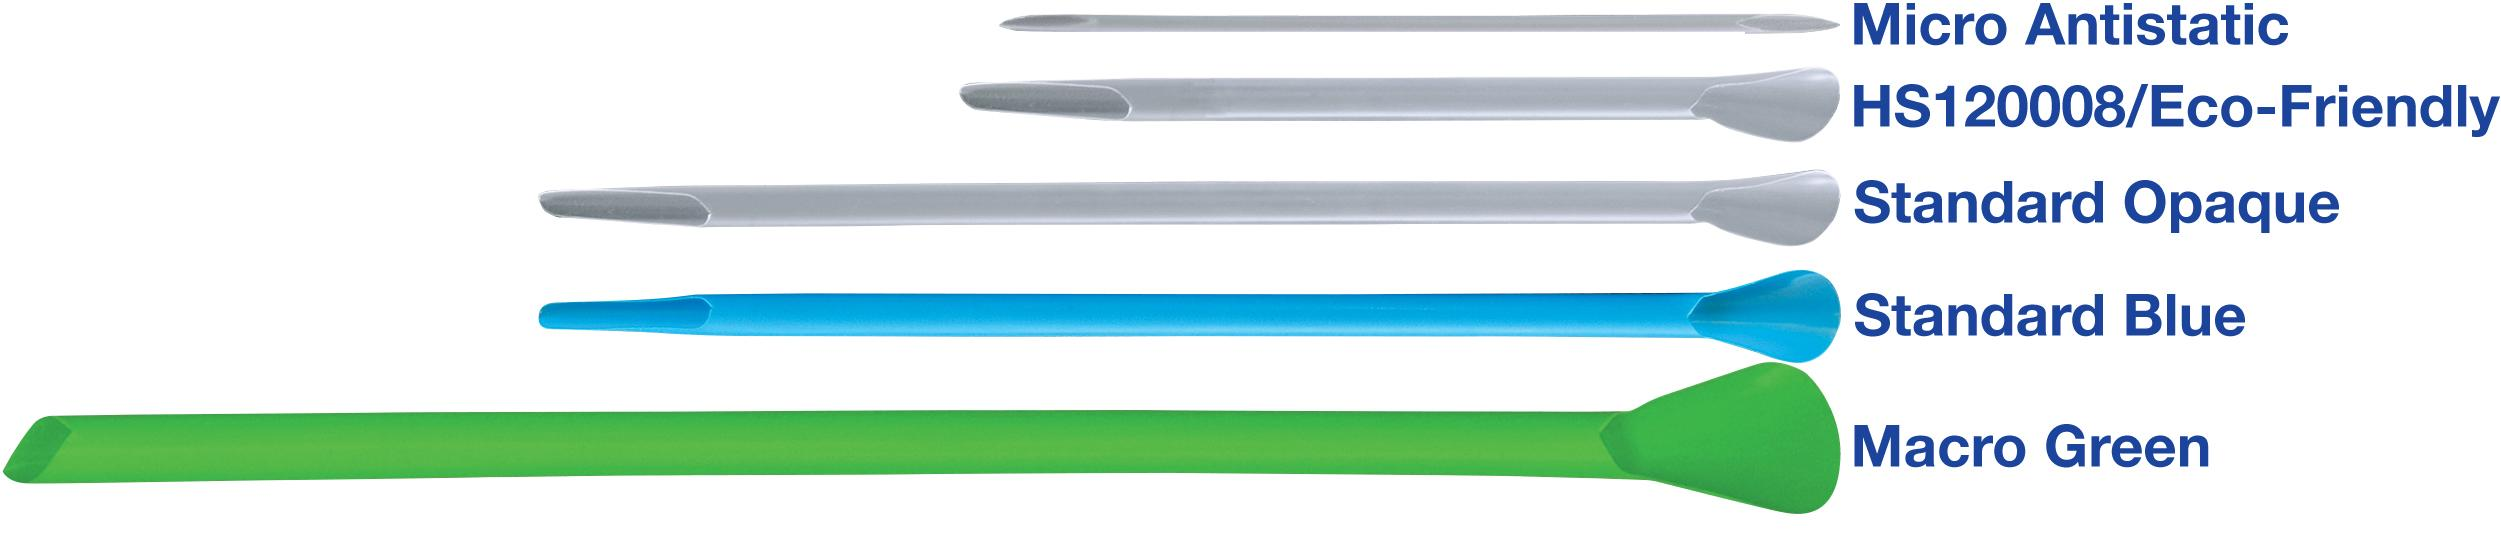 Heathrow Scientific HD120008 smartSPATULAS Disposable Spatula for 15 mL and 1.5 mL Tube 14 cm Length Pack of 300 Eco Opaque